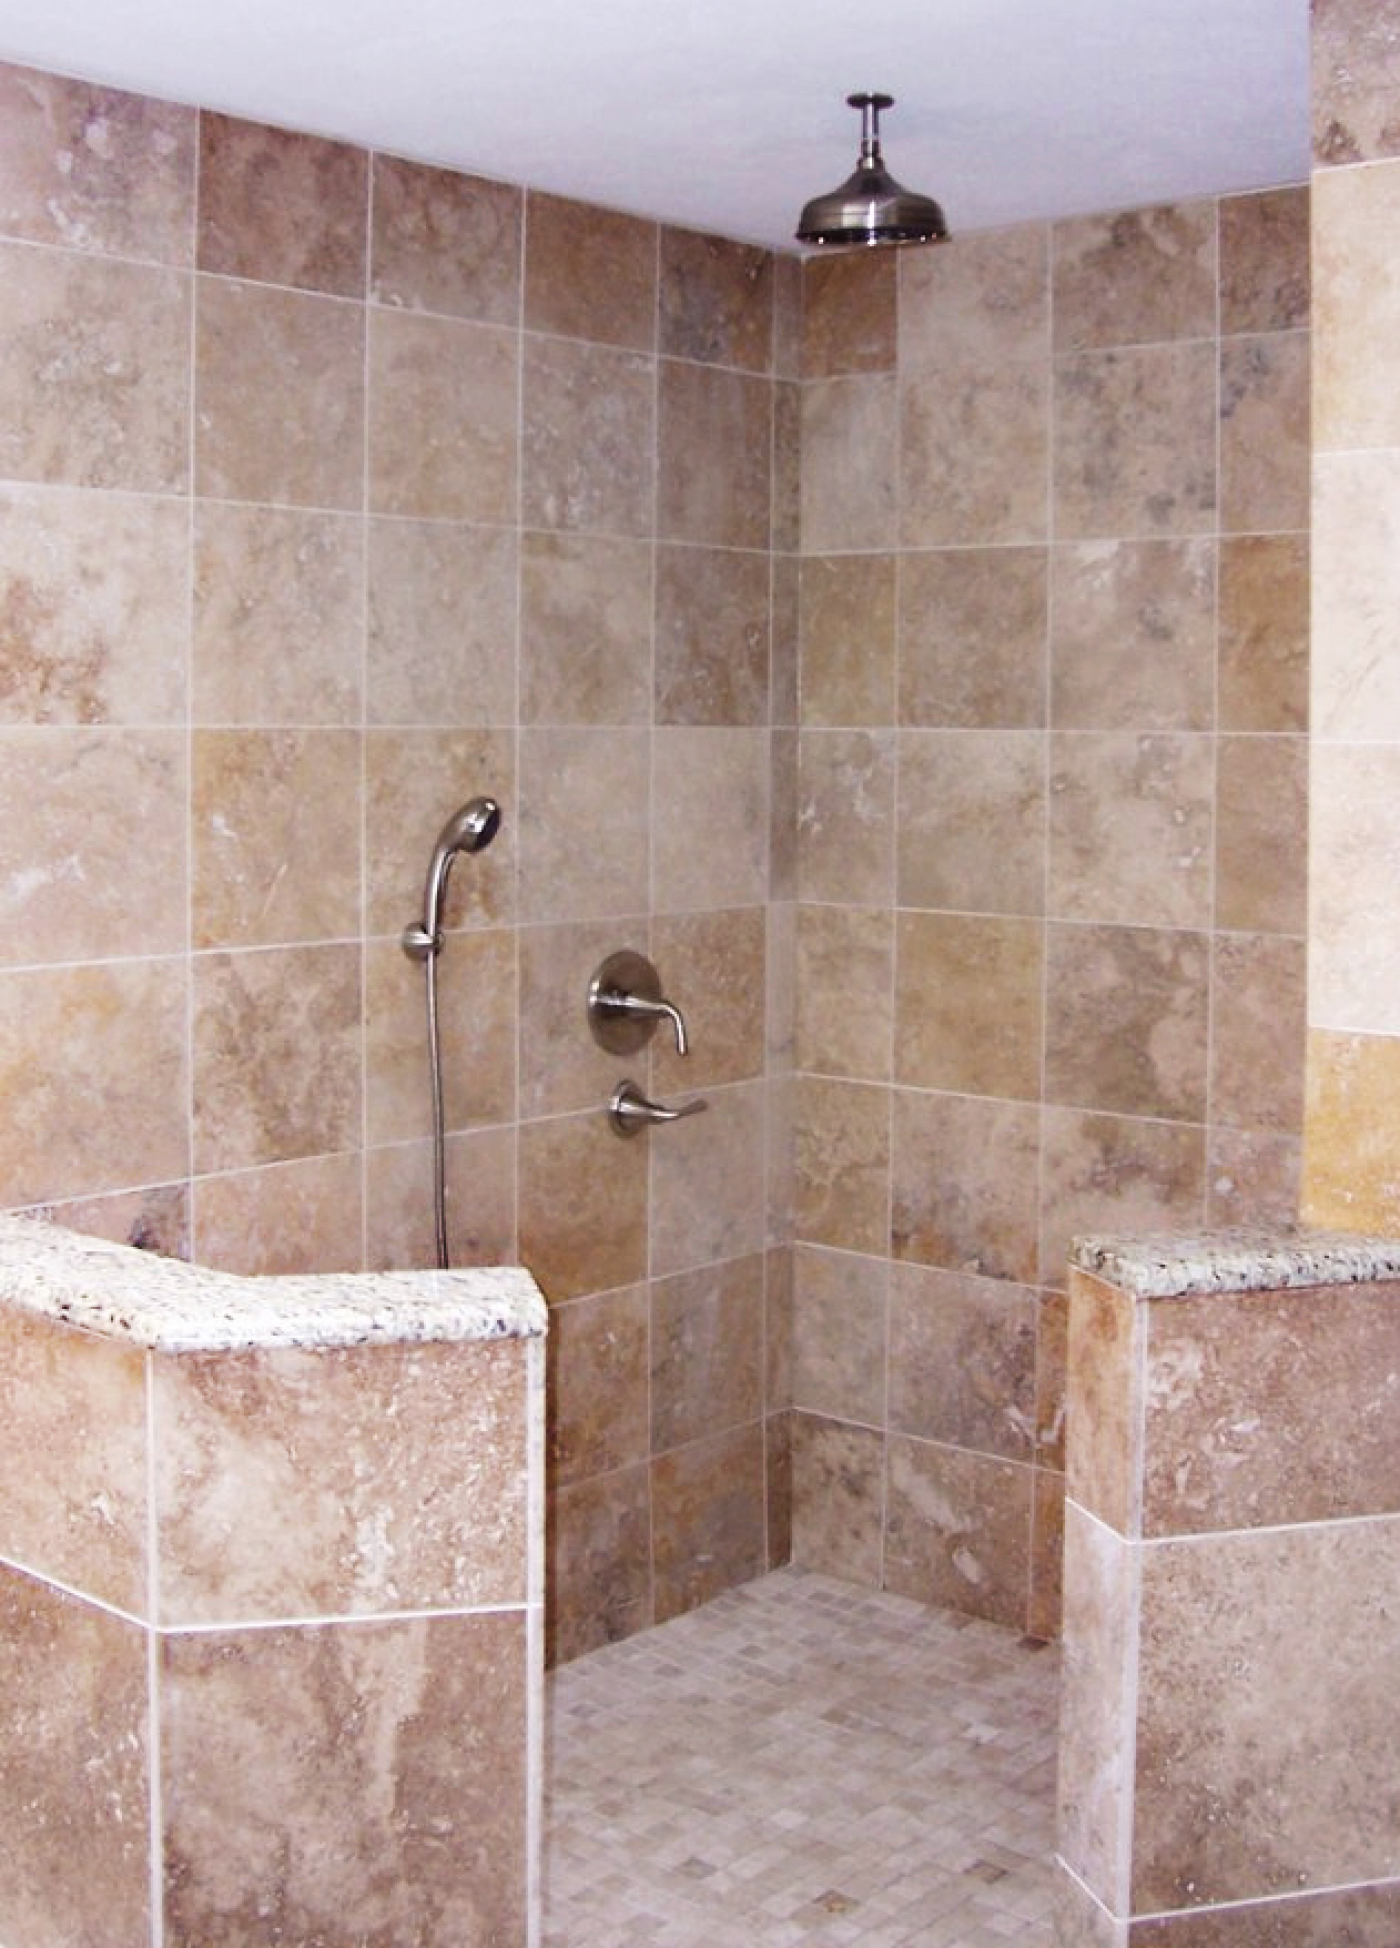 Large Shower No Walls Small Bathroom With Shower Designs With Walk In Shower No Door And Showers Without Doors Small Bathroom Walk In Shower